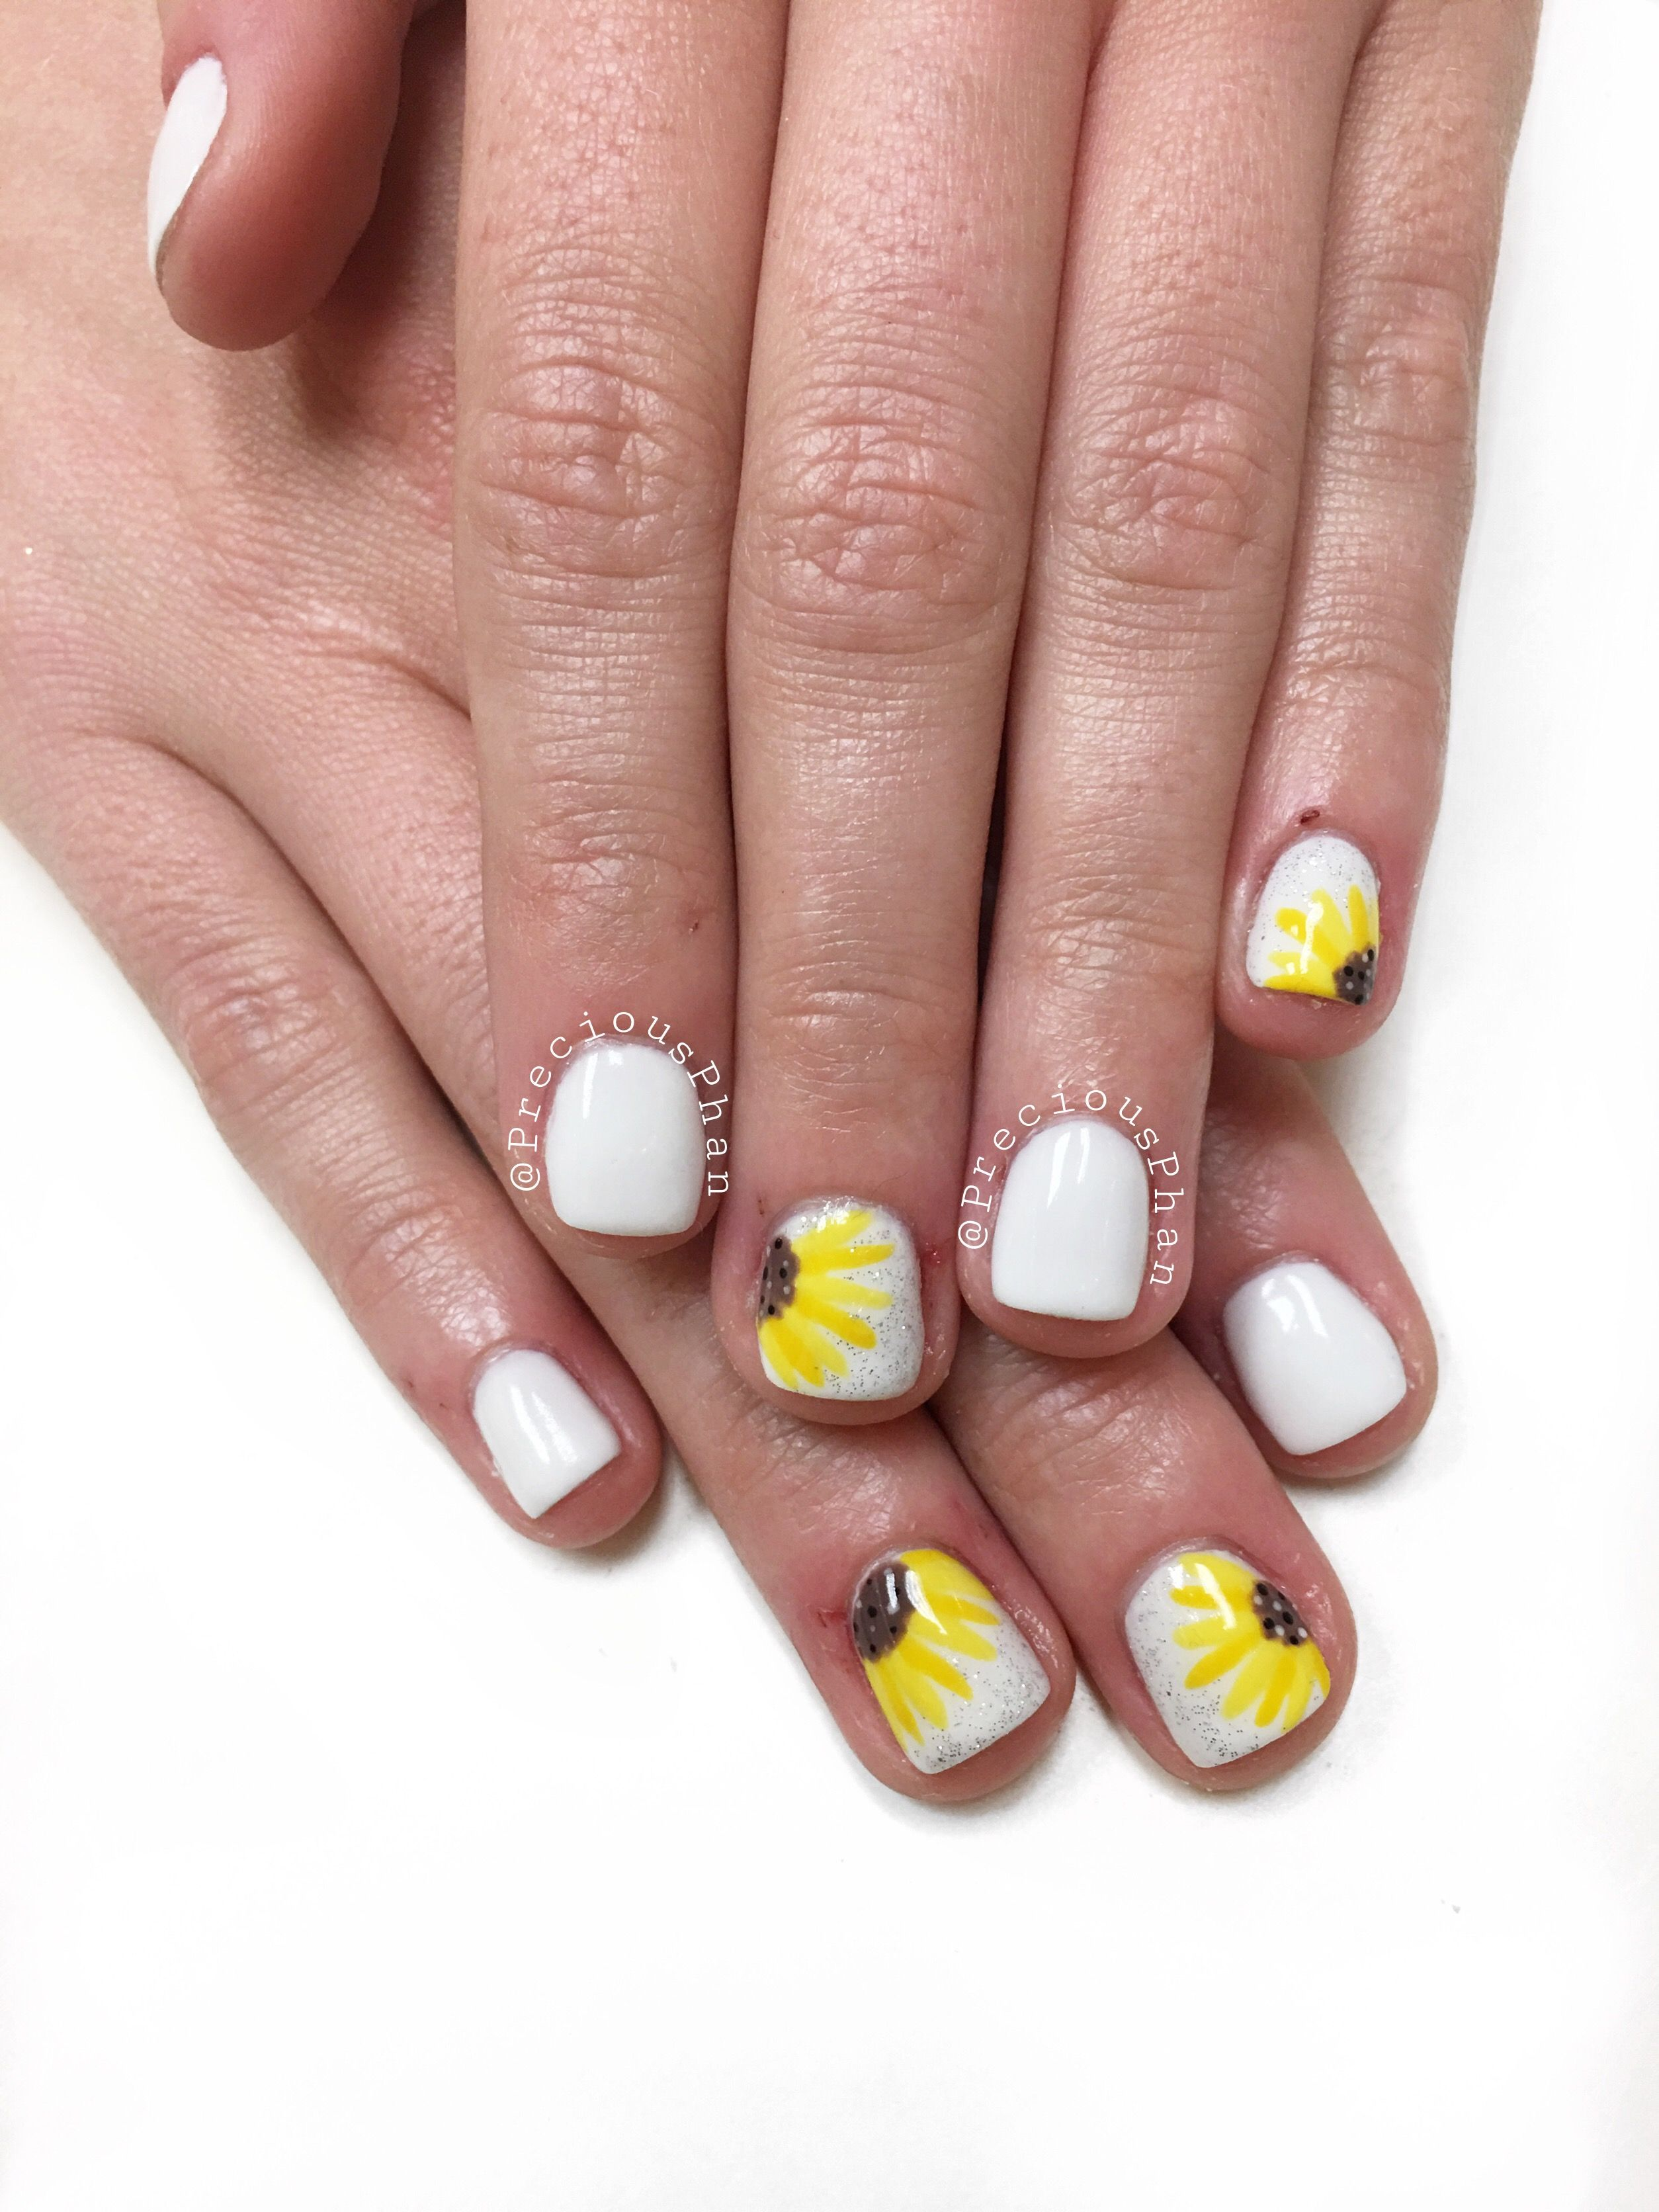 White Nails With Sunflowers Are Everything Preciousphan Sunflower Nails White Nails Nails